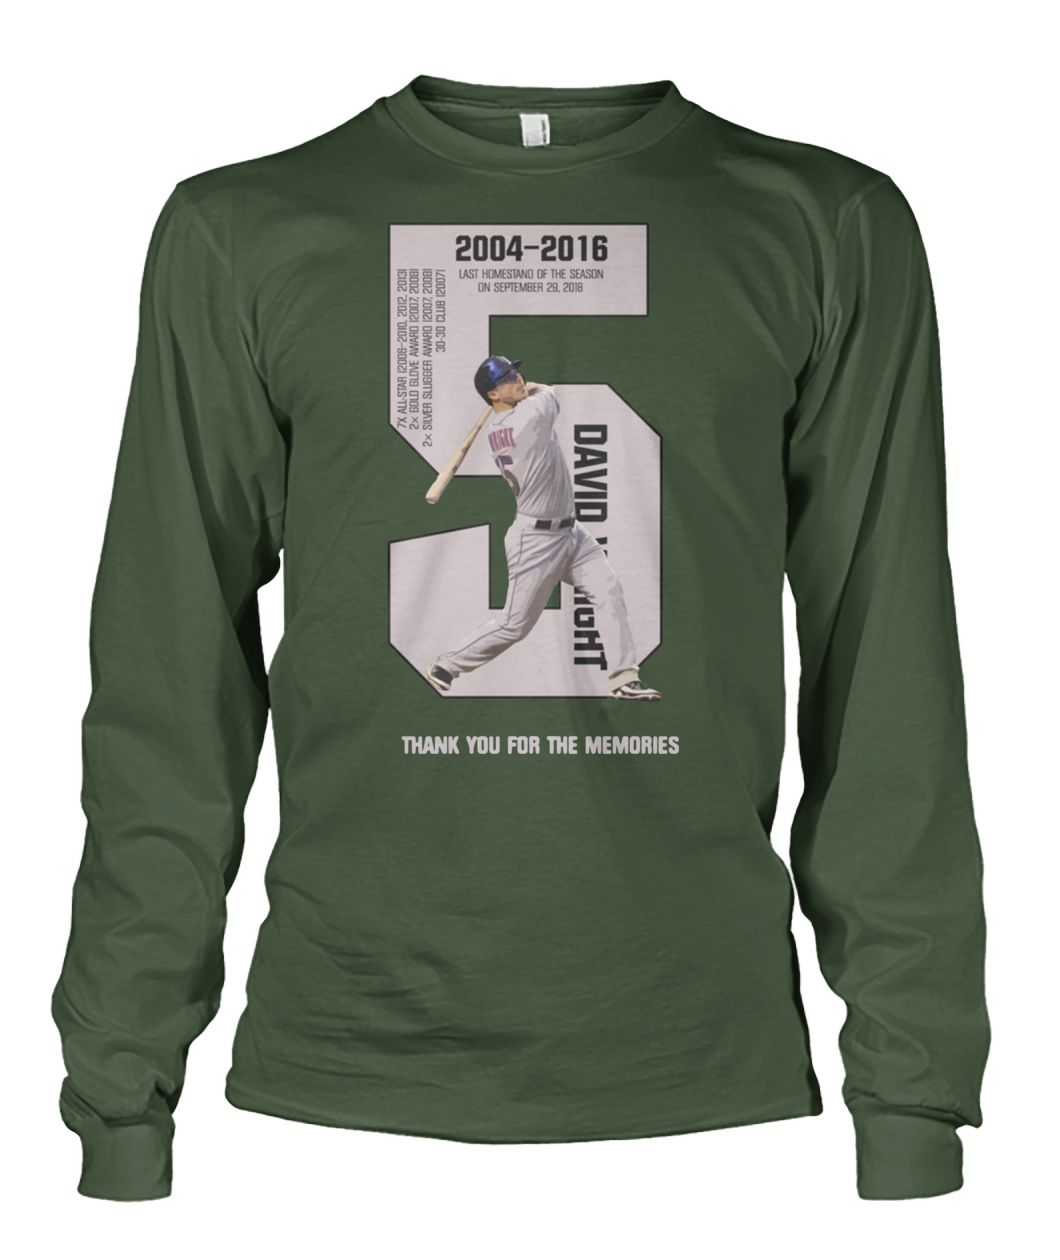 David Wright thank you for the memories 2004-2016 unisex long sleeve